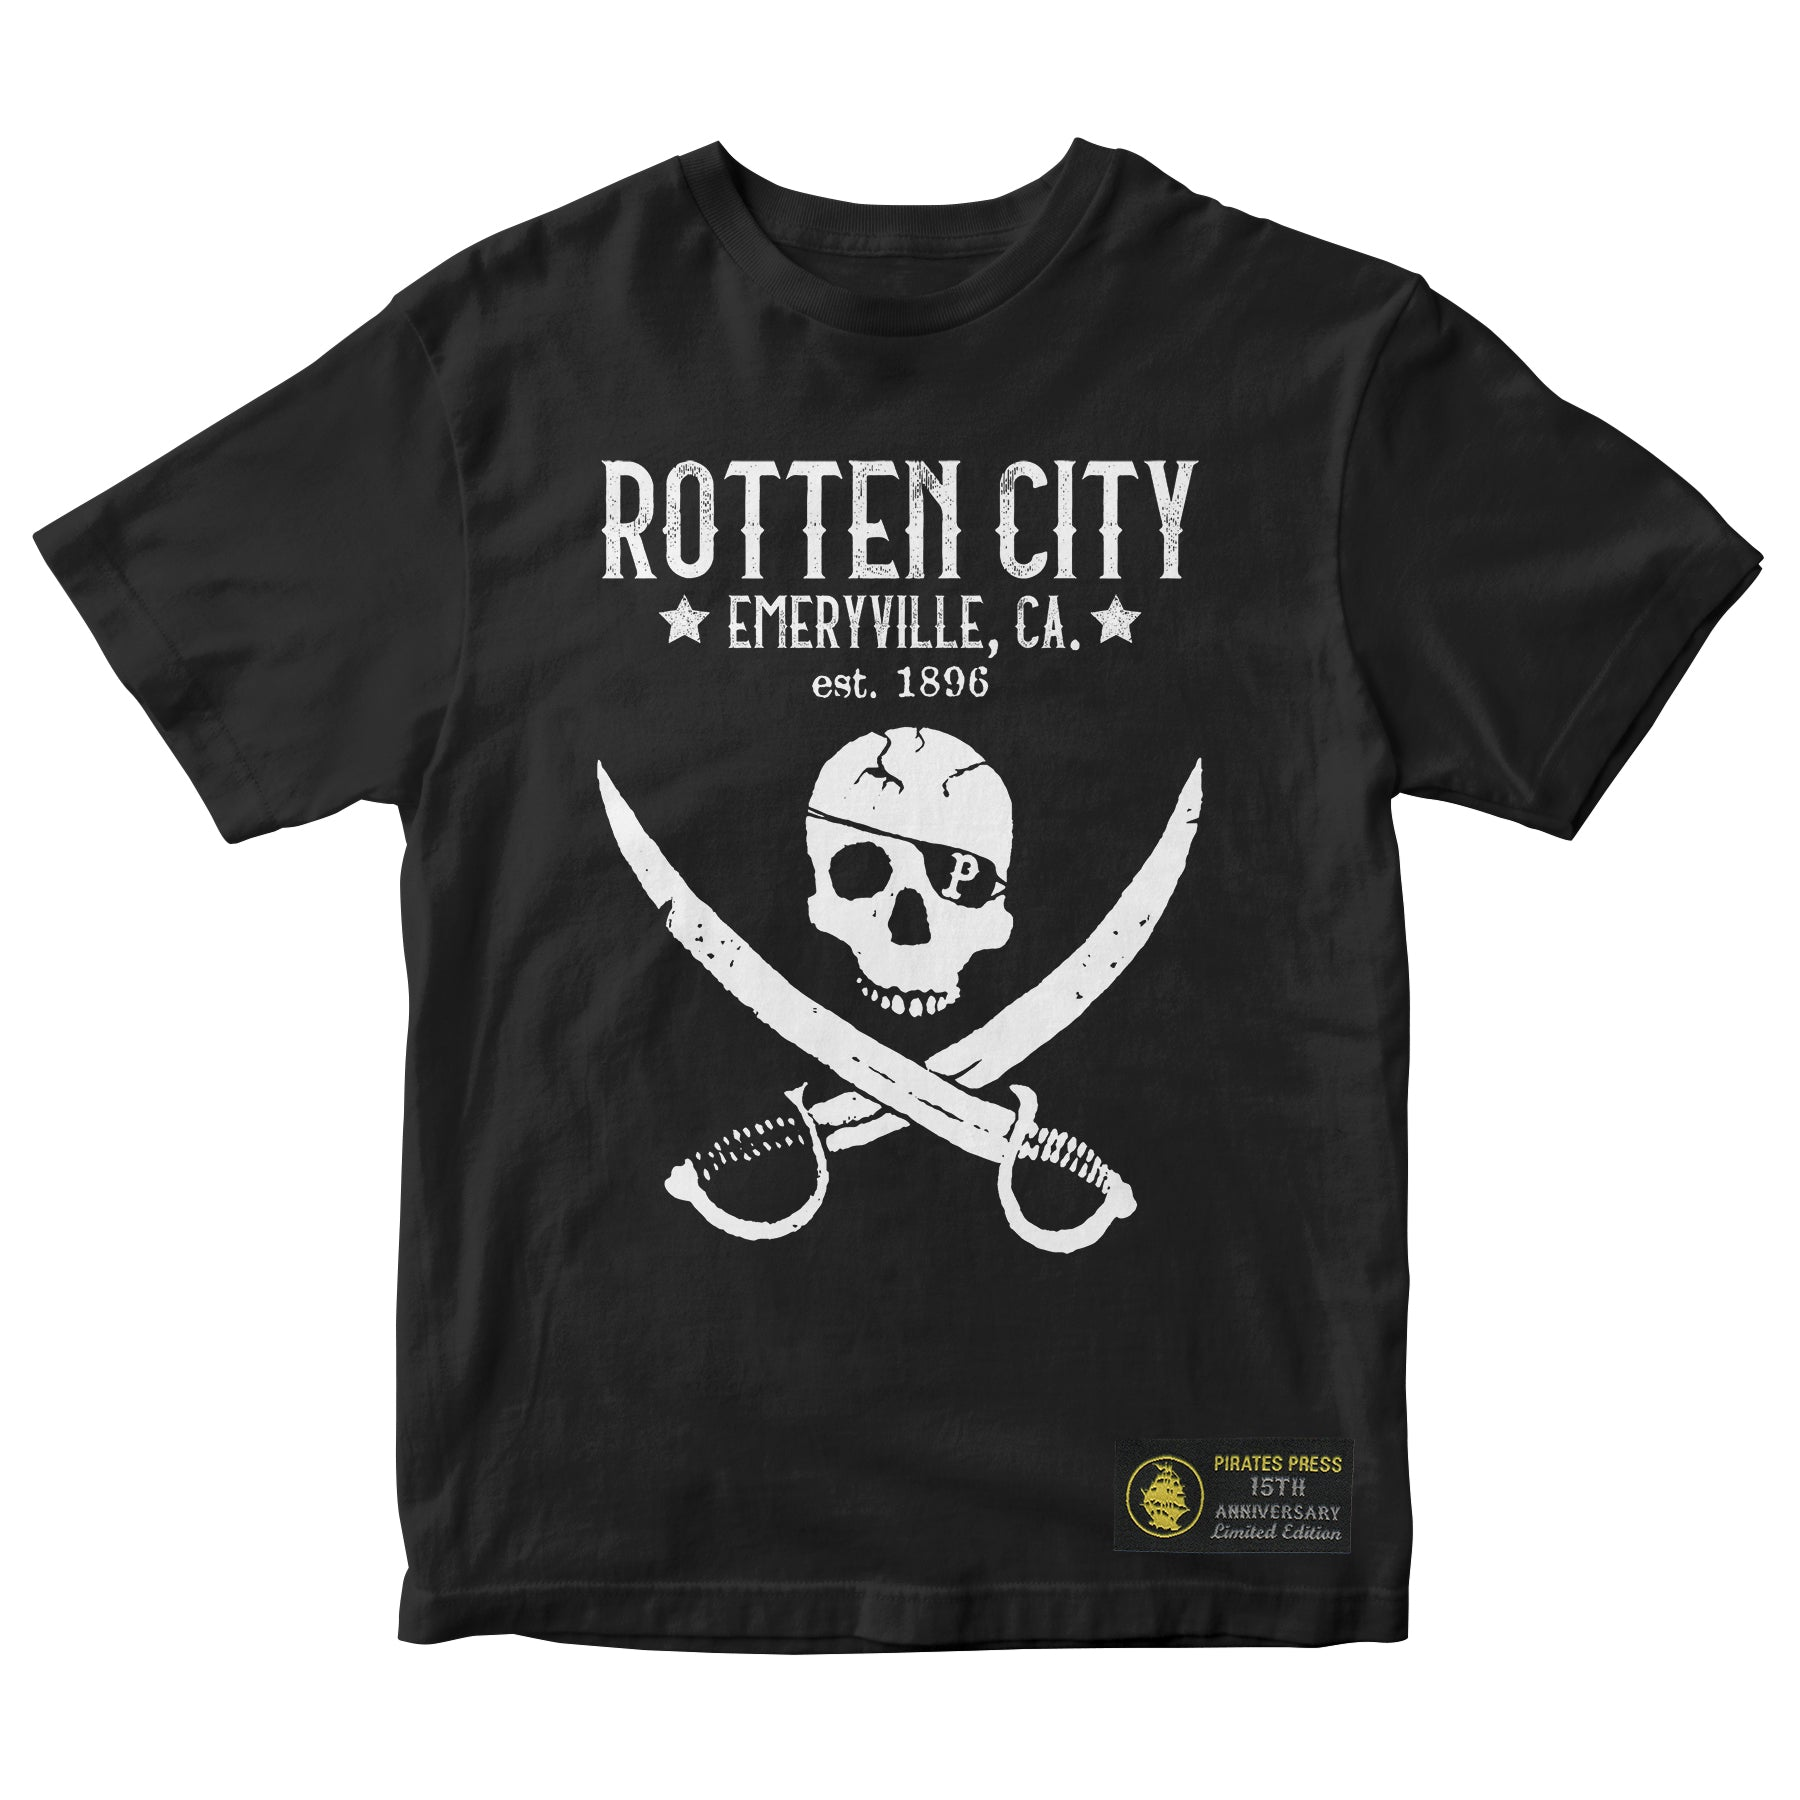 Pirates Press - Rotten City - Black - 15 Year Tag - T-Shirt